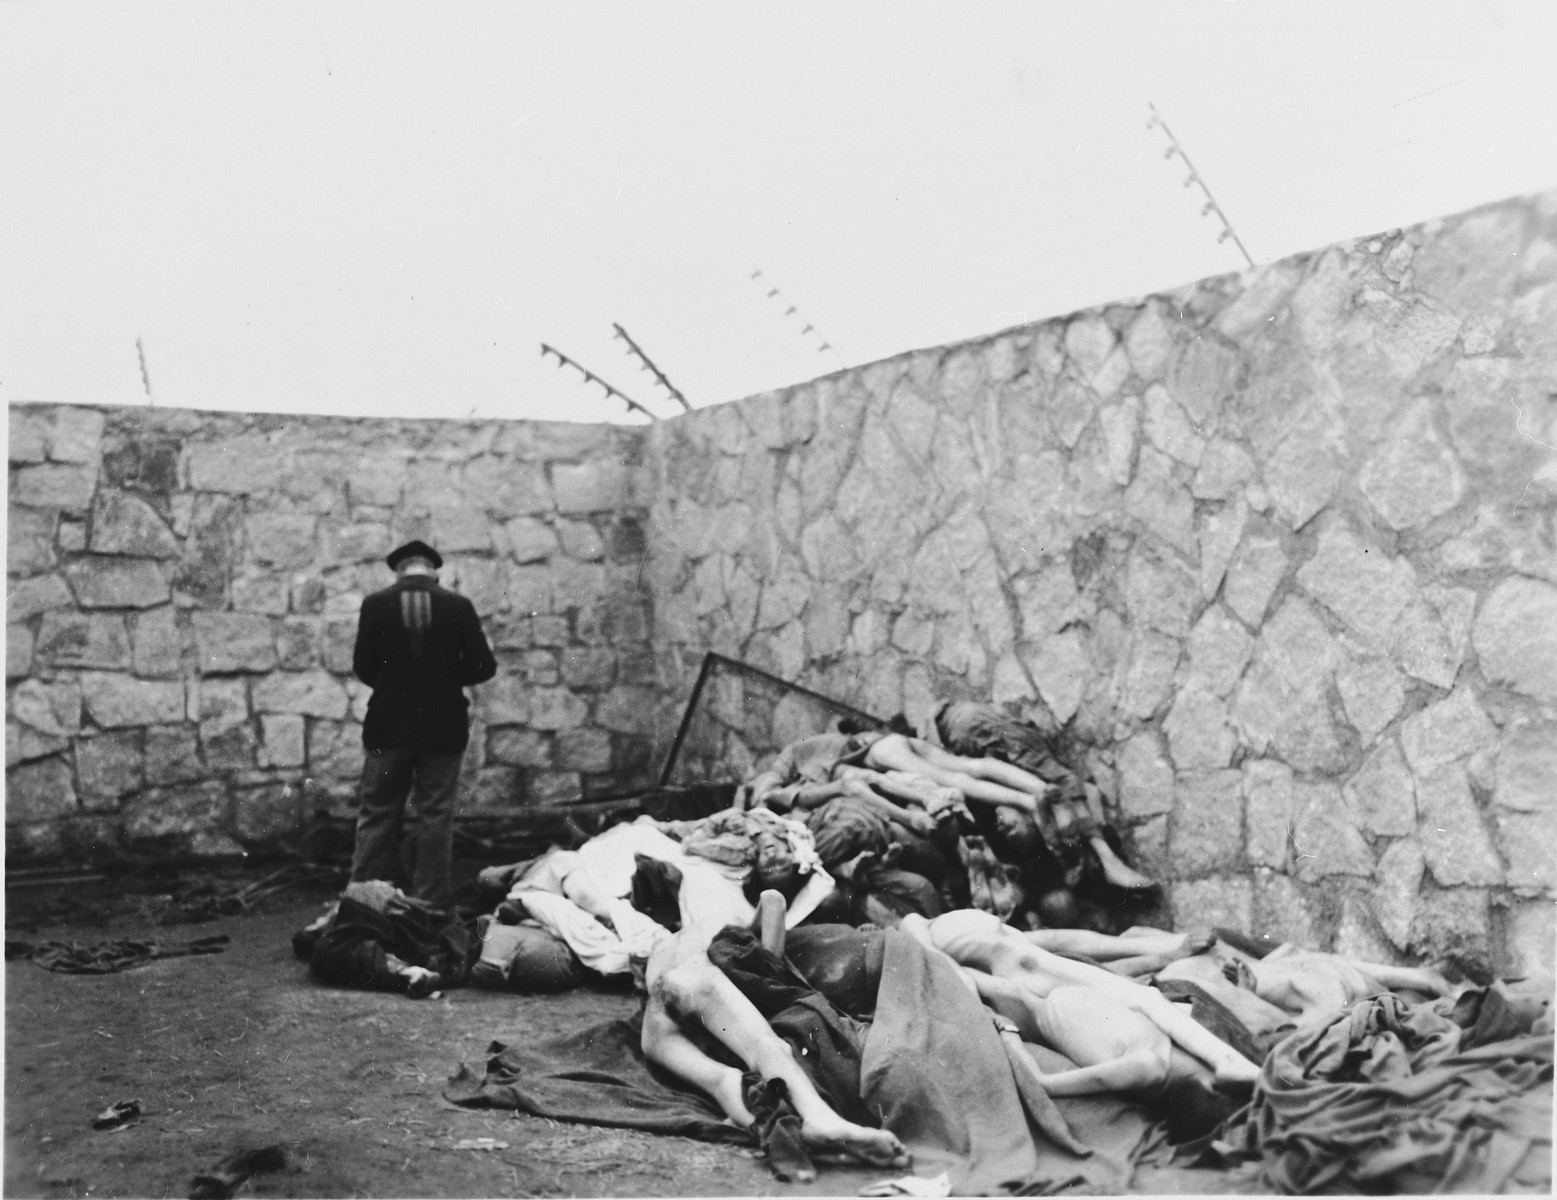 A survivor stands beside corpses piled against a wall in the Mauthausen concentration camp.